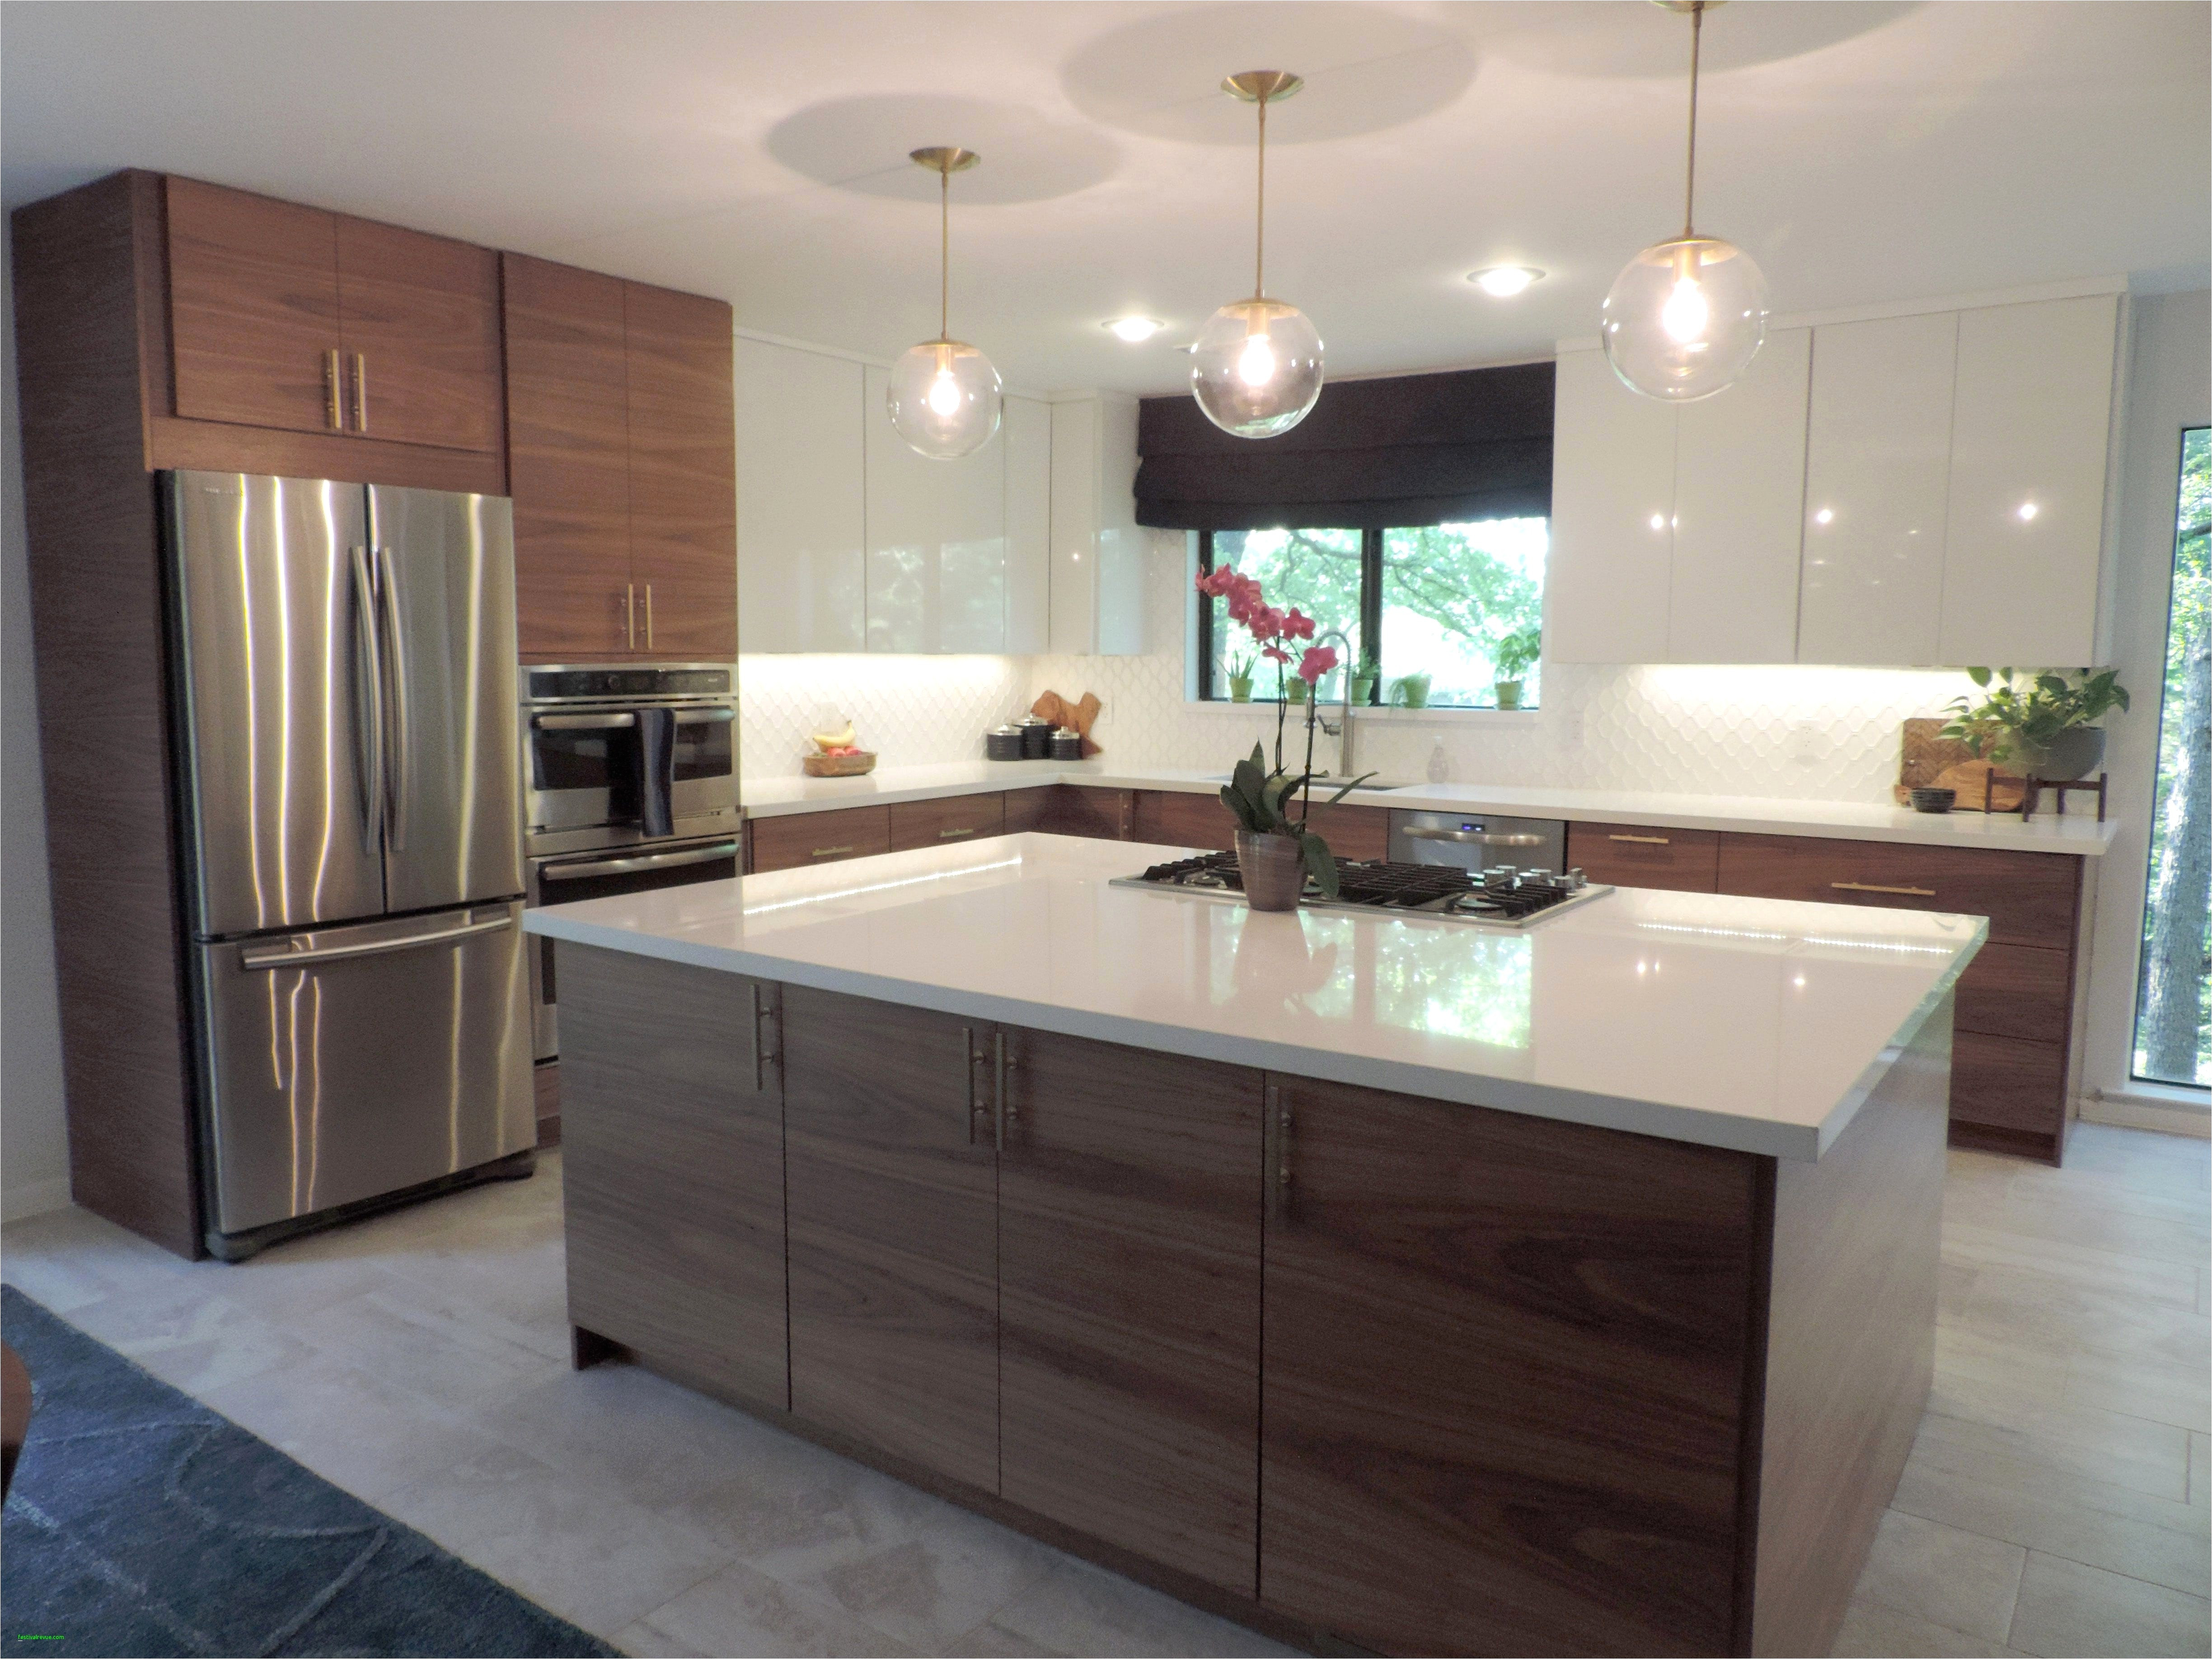 designs kitchen cabinets with s s s media cache ak0 pinimg originals a8 d3 0d